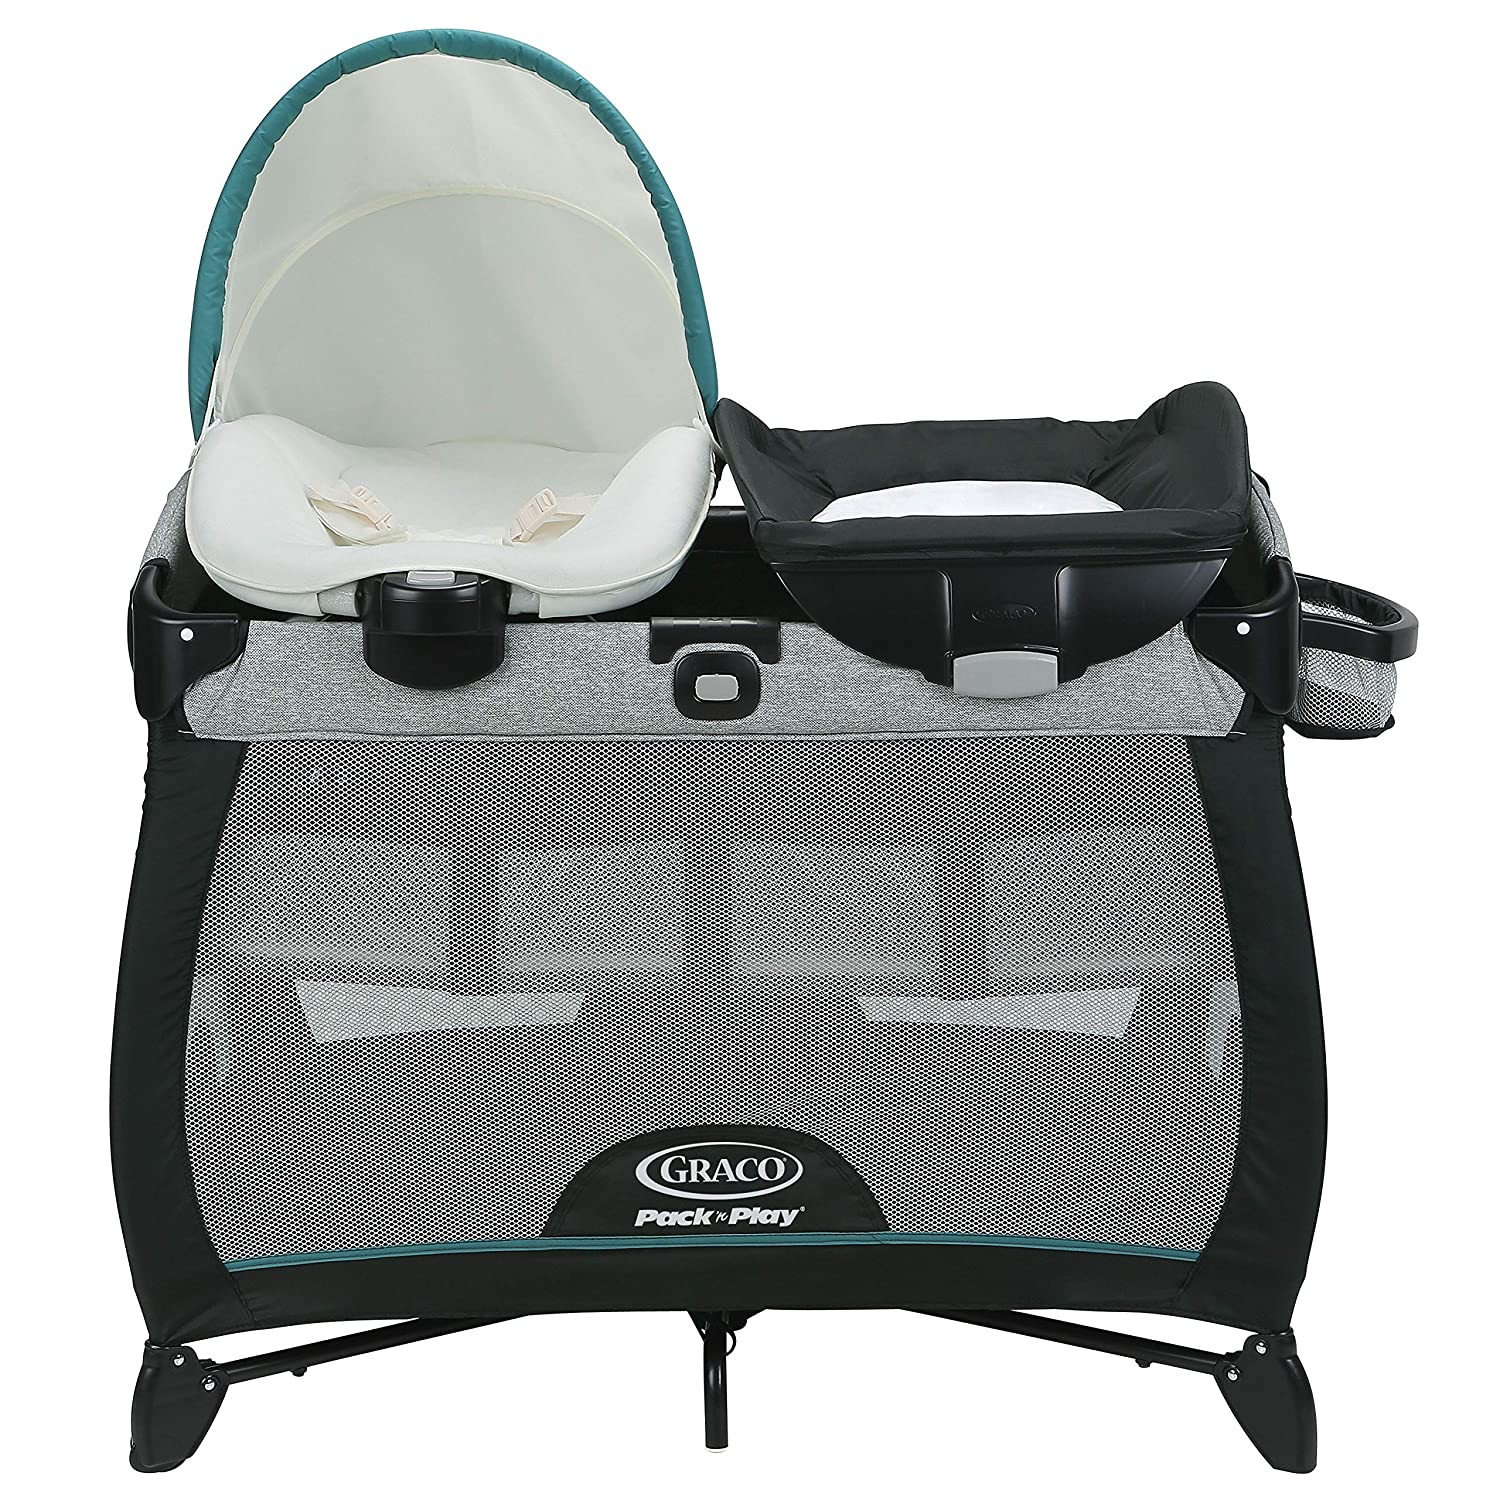 Graco Pack n Play Playard Quick Connect Portable Napper with Bassinet, Darcie